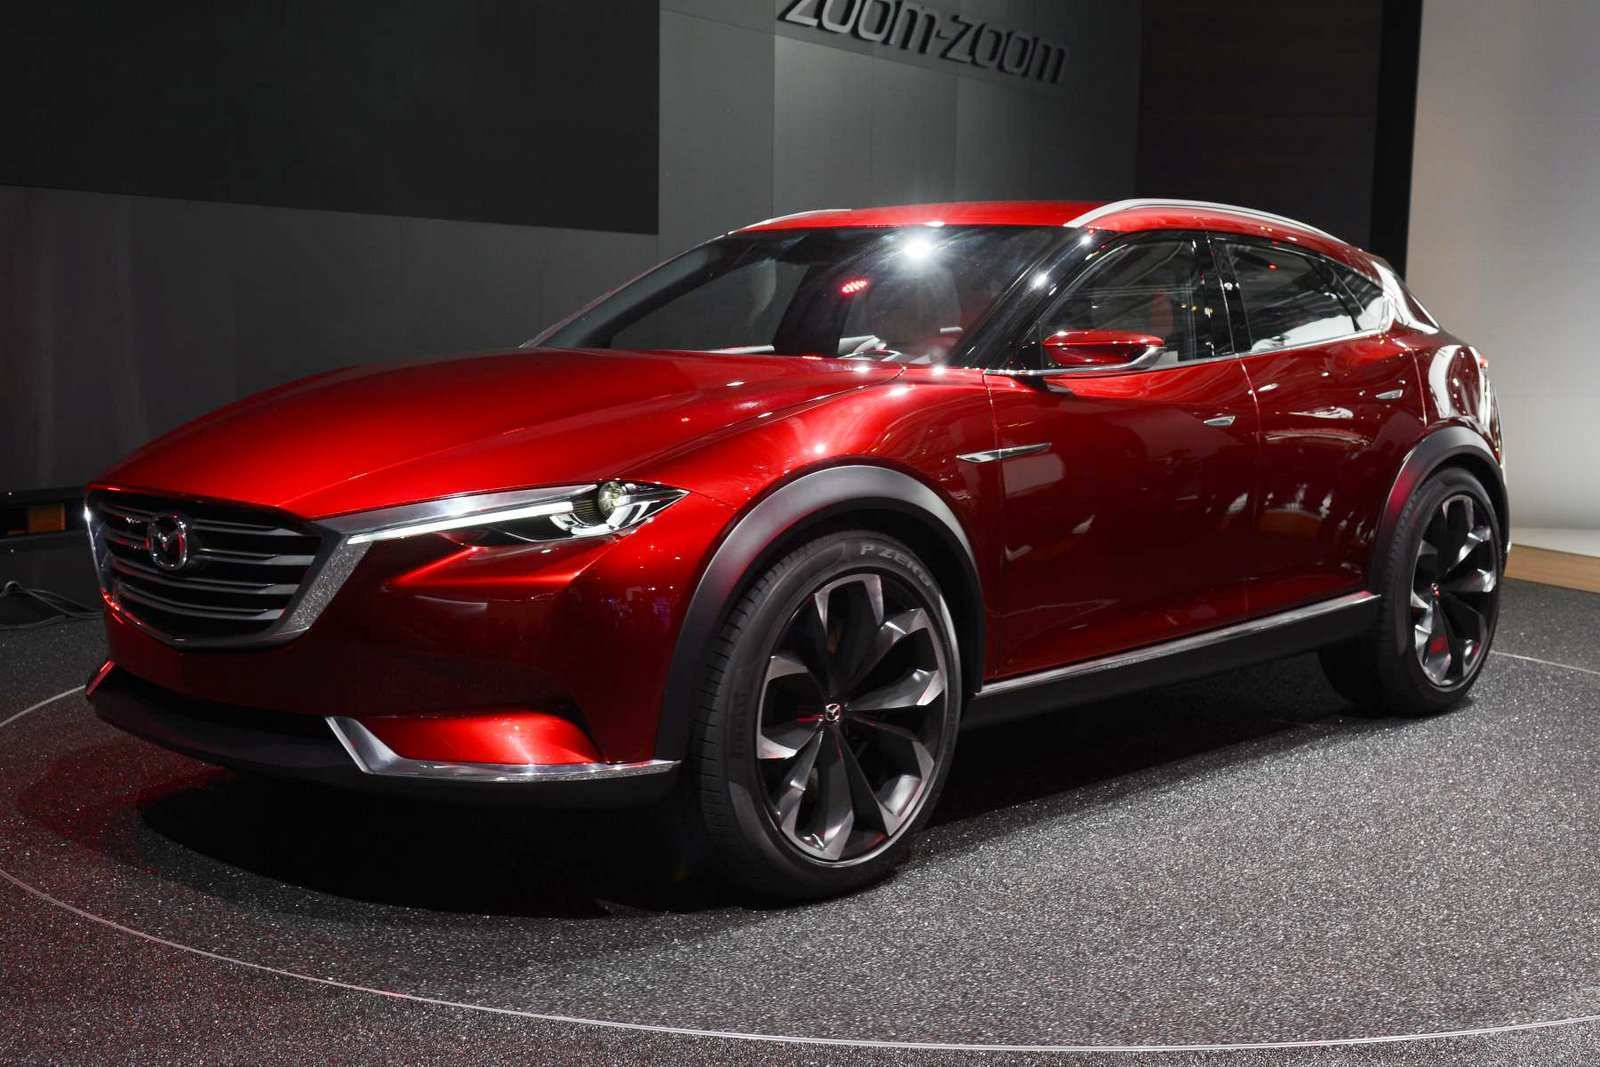 44 New All New Mazda Cx 3 2020 Performance And New Engine